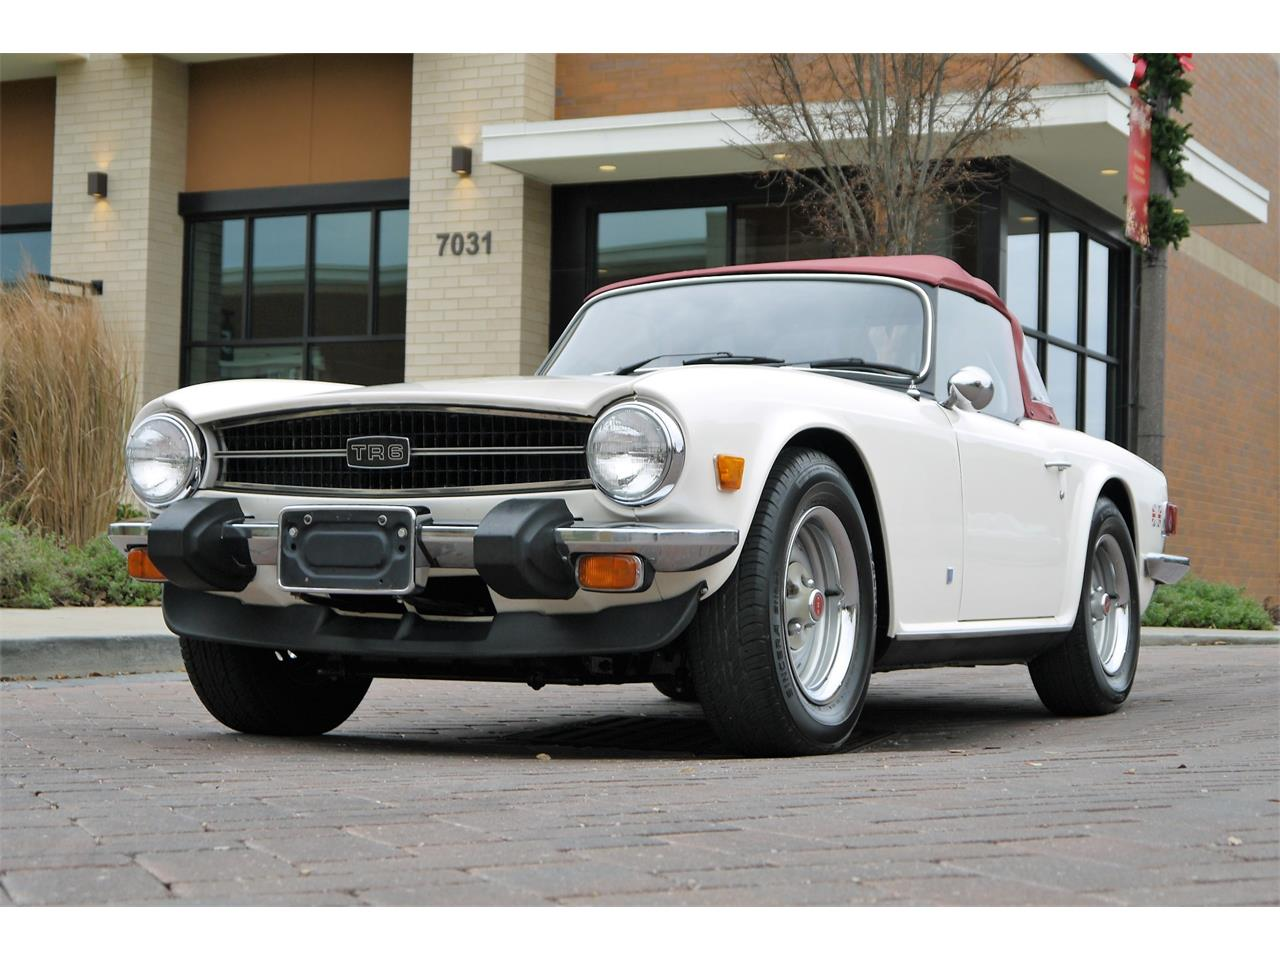 1976 Triumph TR6 for sale in Brentwood, TN – photo 55